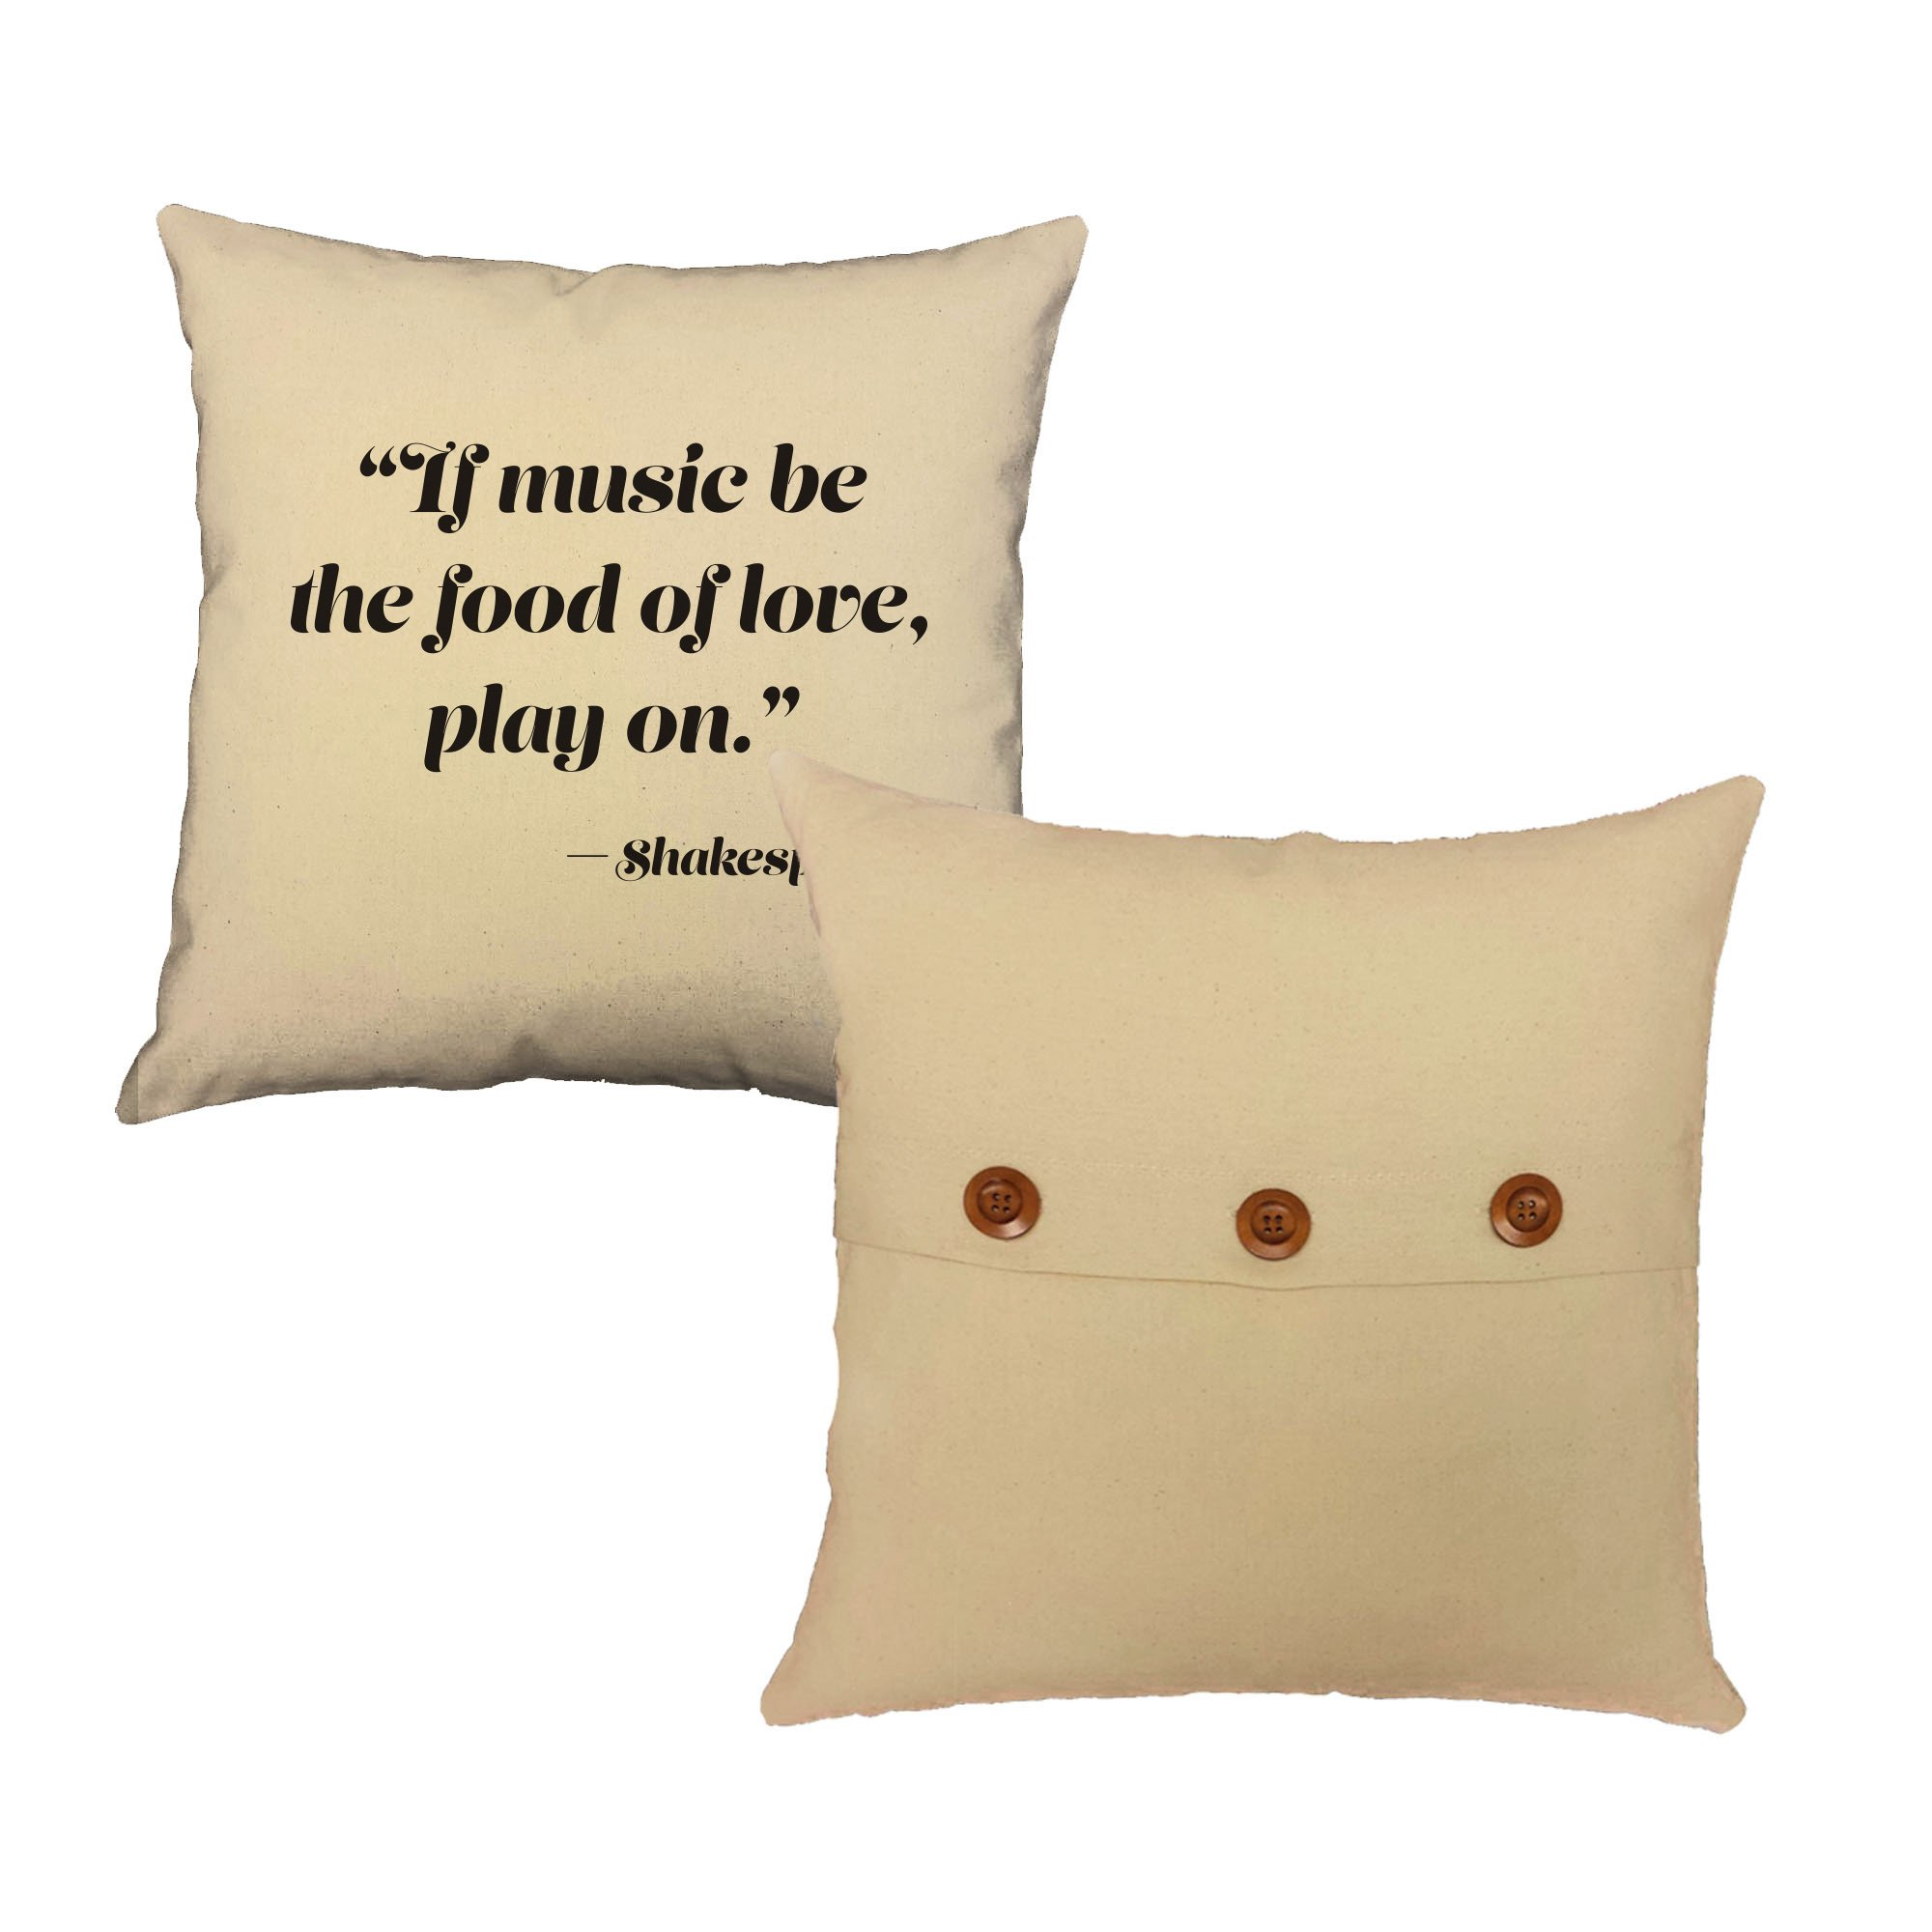 Set of 2 RoomCraft Music is the Food of Love Throw Pillows 20x20 Square Red Cotton Shakespeare Quote Cushions by RoomCraft (Image #5)